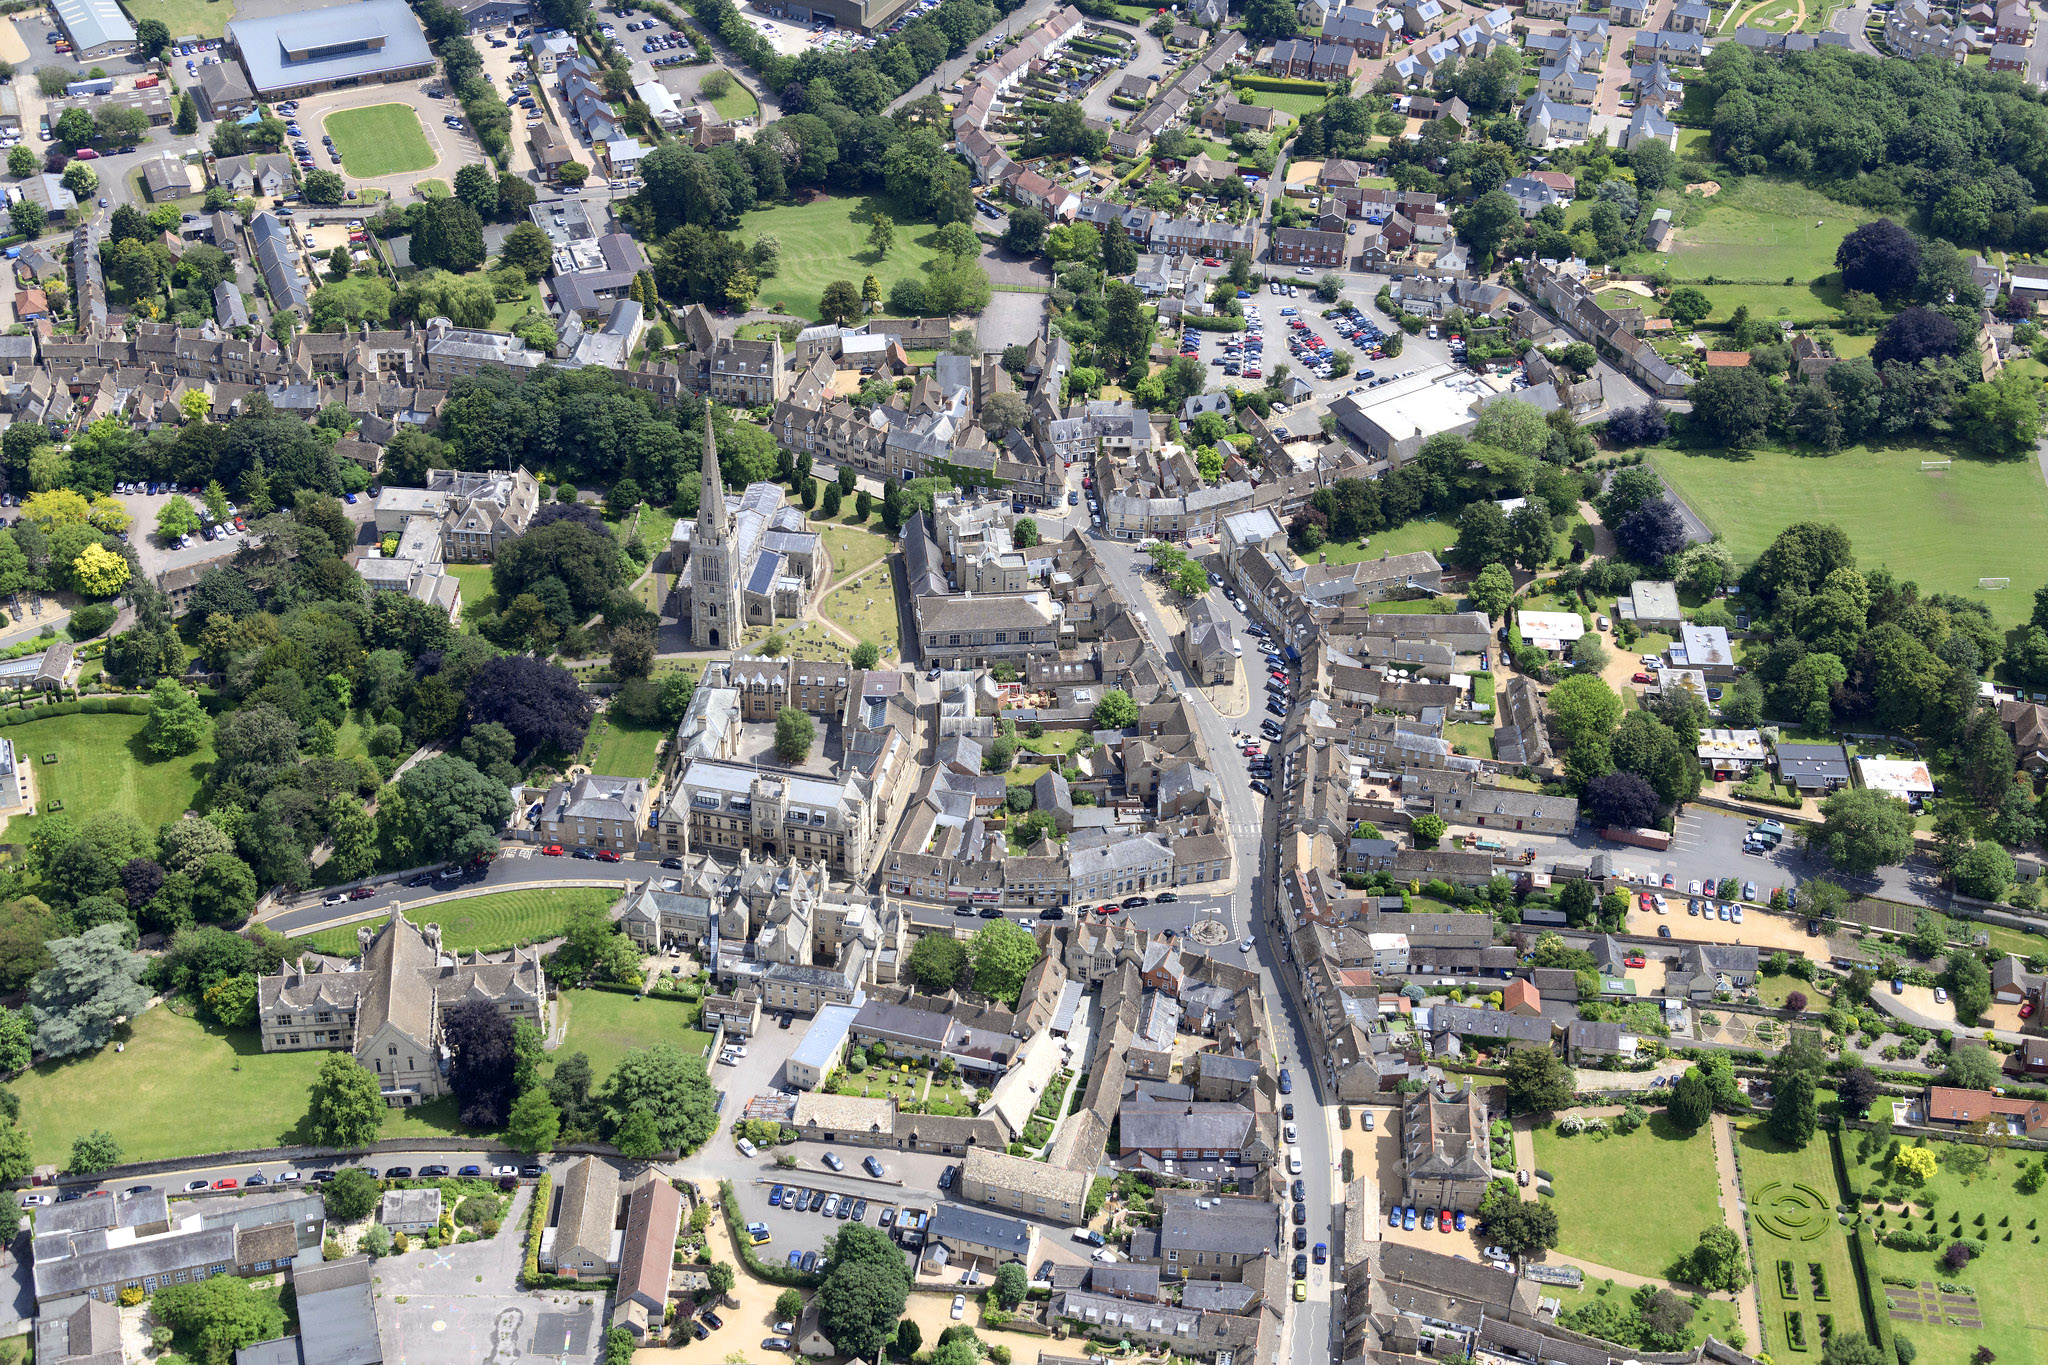 Aerial view of Oundle in Northamptonshire by John Fielding.jpg